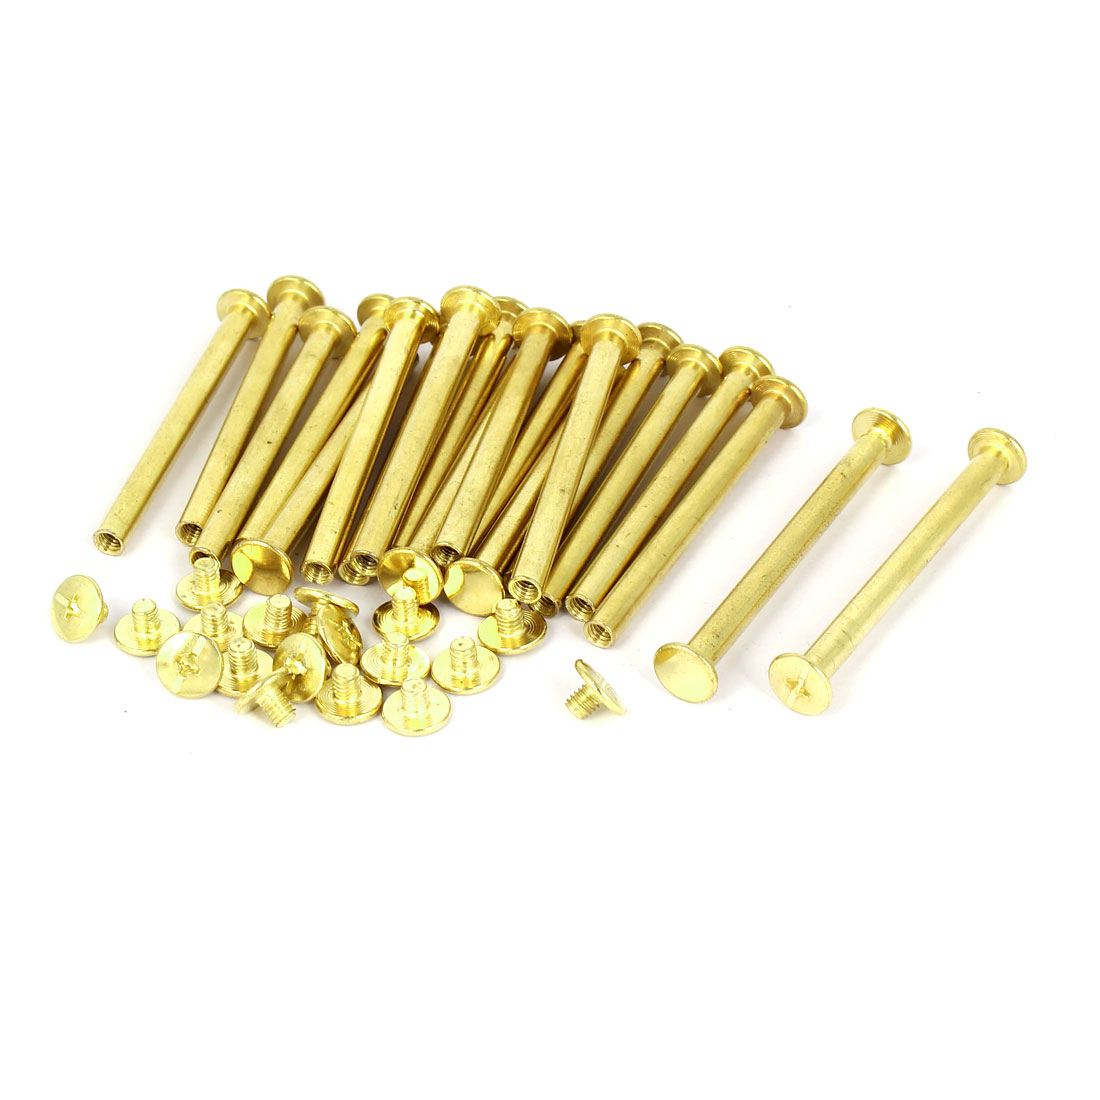 5mmx55mm Brass Plated Chicago Screws Binding Posts Docking Rivet 20pcs